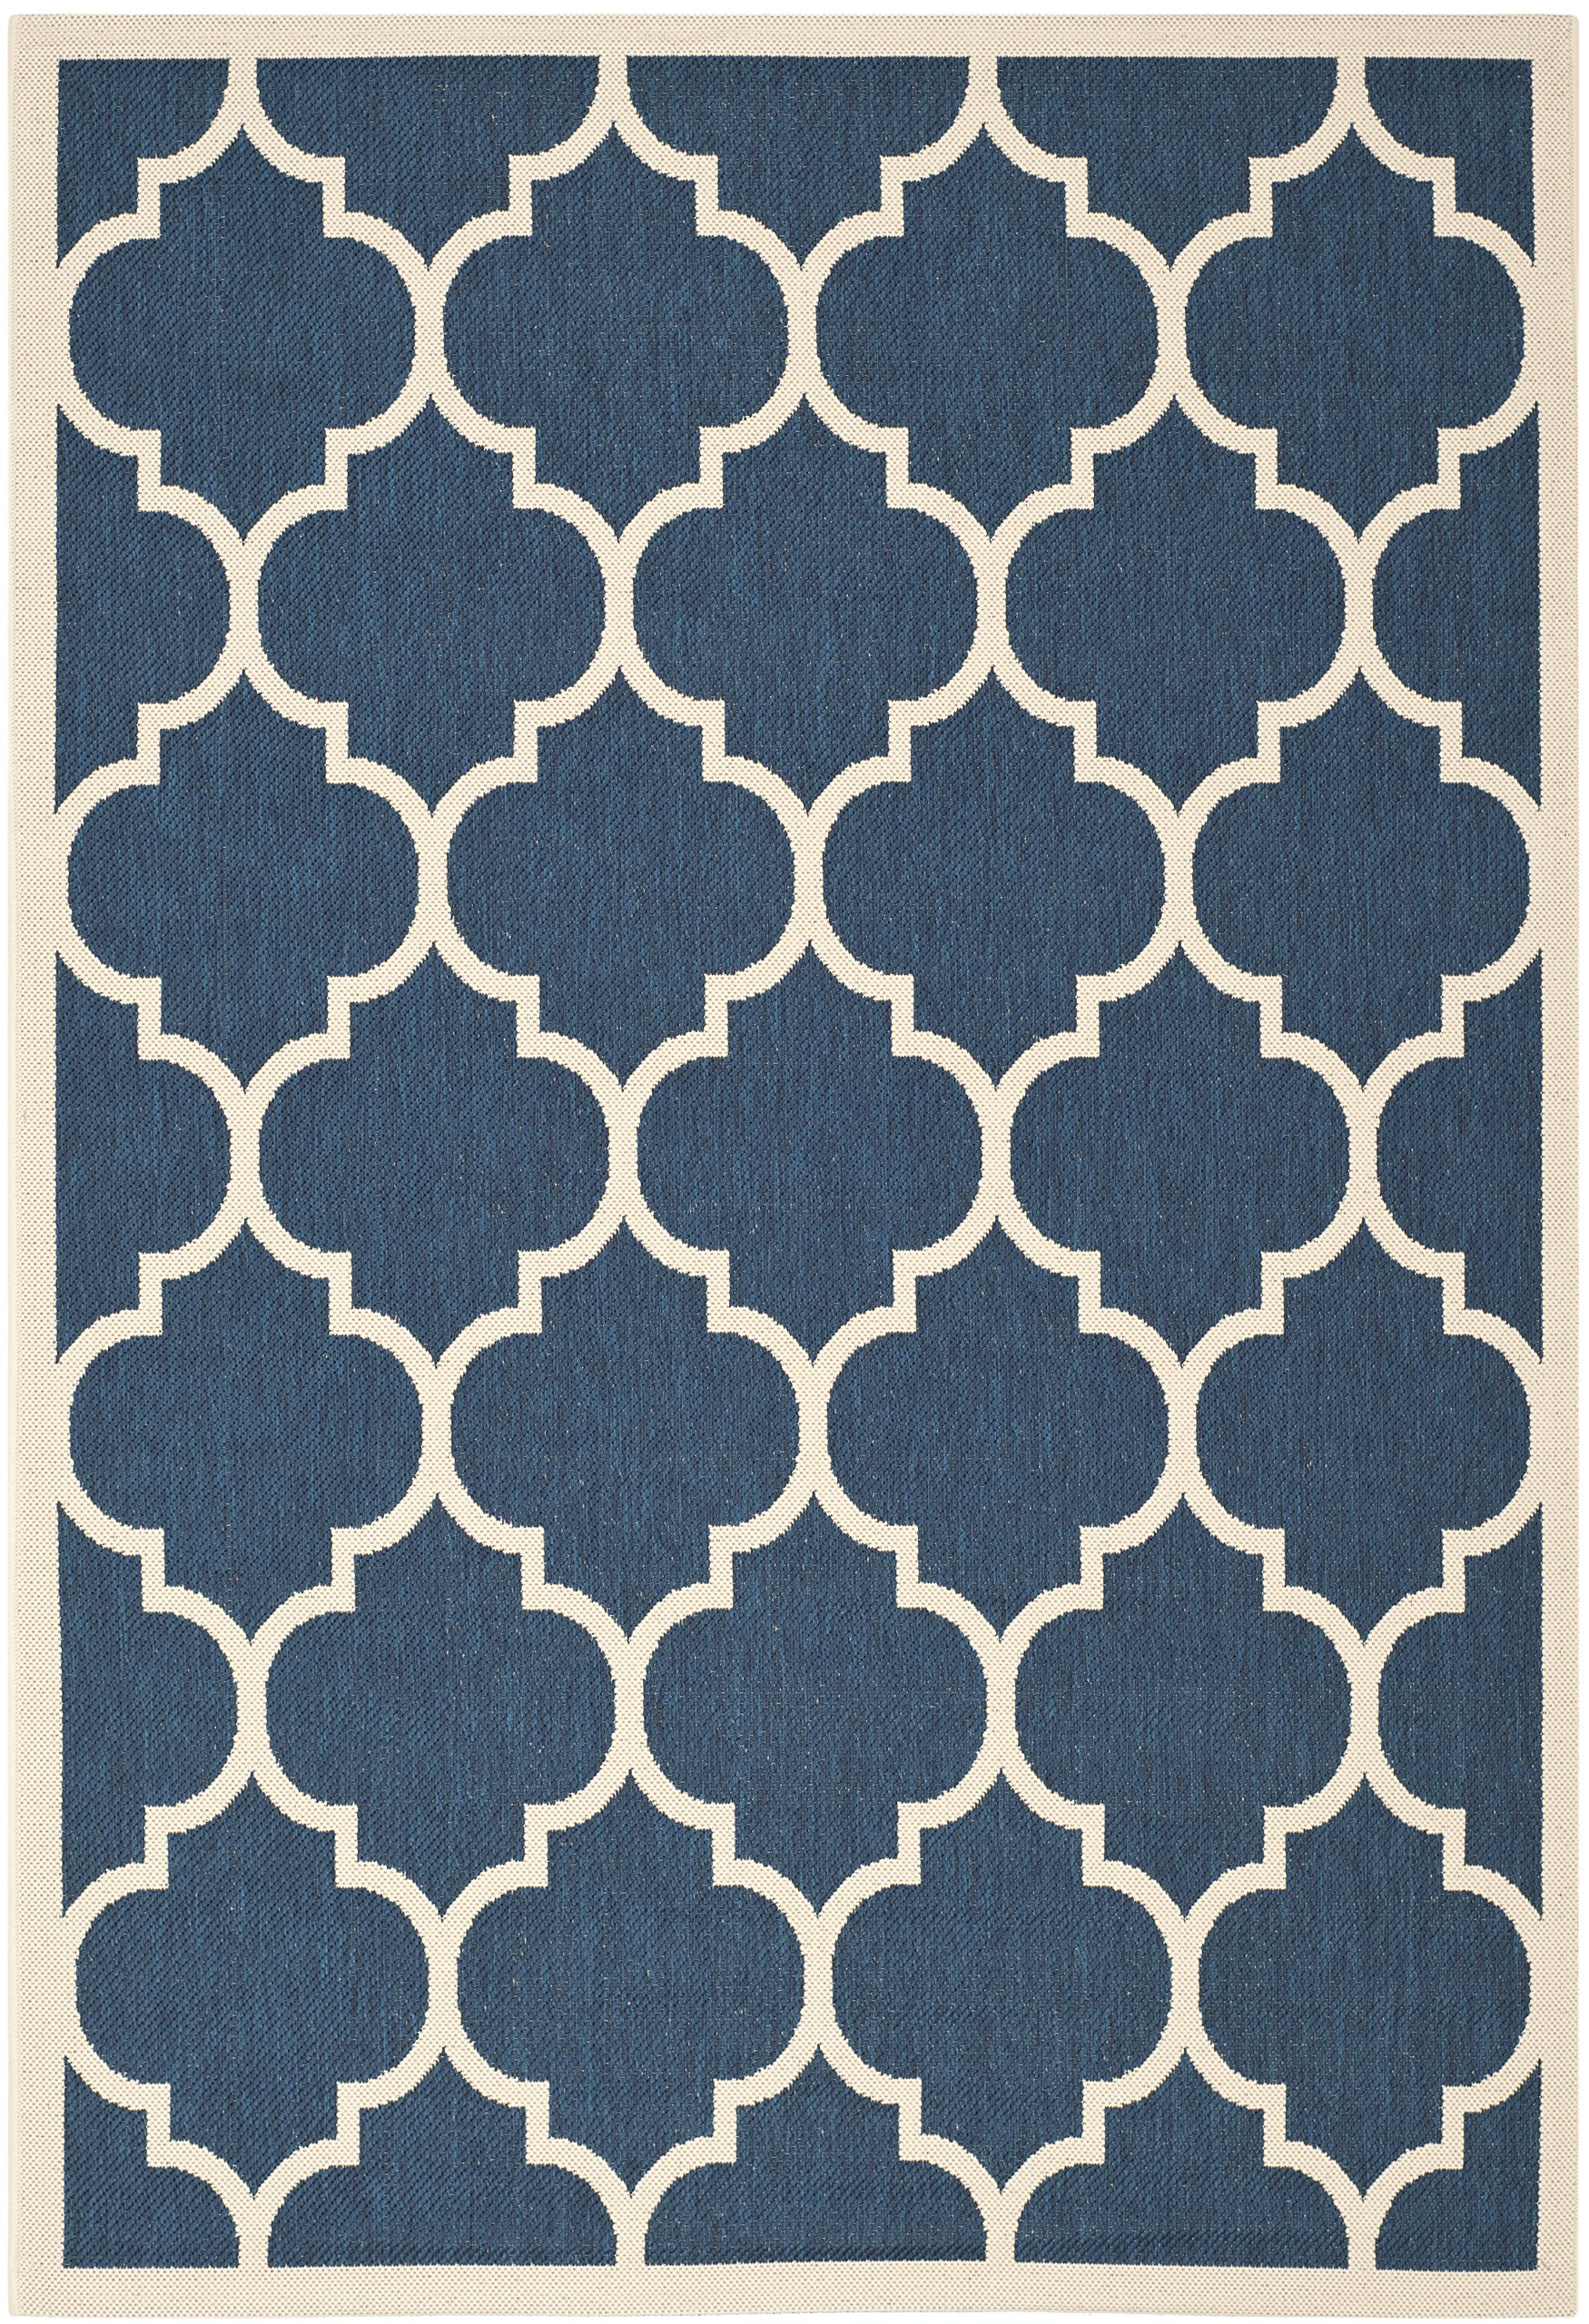 Safavieh courtyard collection cy6914 268 navy and beige indoor outdoor area rug 5